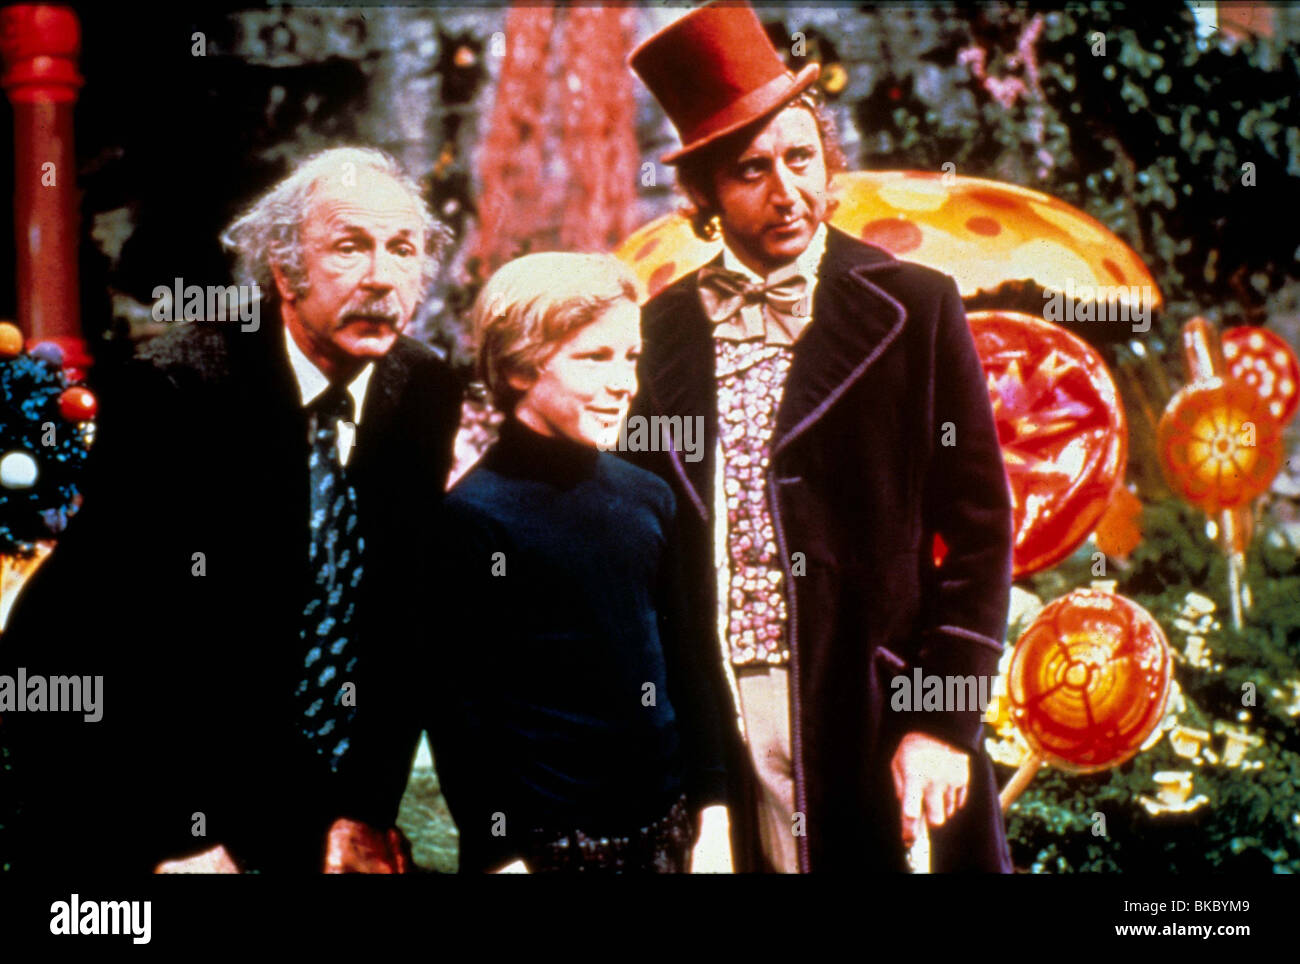 Willy Wonka And The Chocolate Factory Stock Photos & Willy Wonka ...